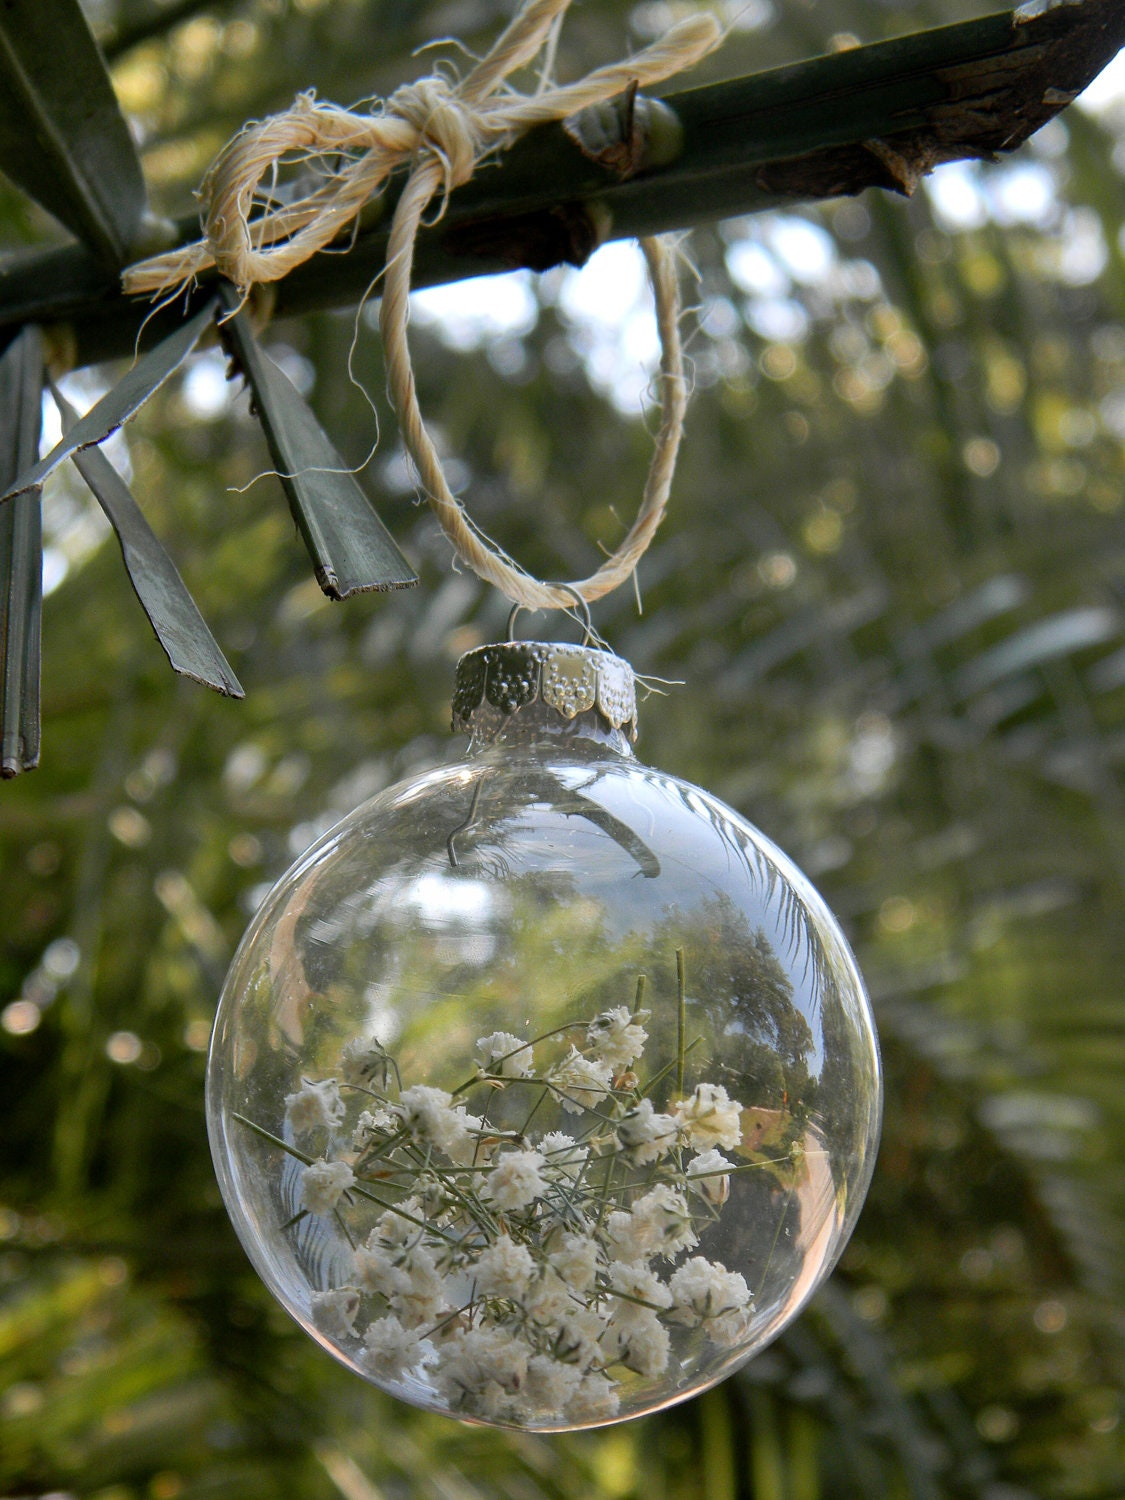 rustic baby u0026 39 s breath clear glass ball by charlestoncharms on etsy